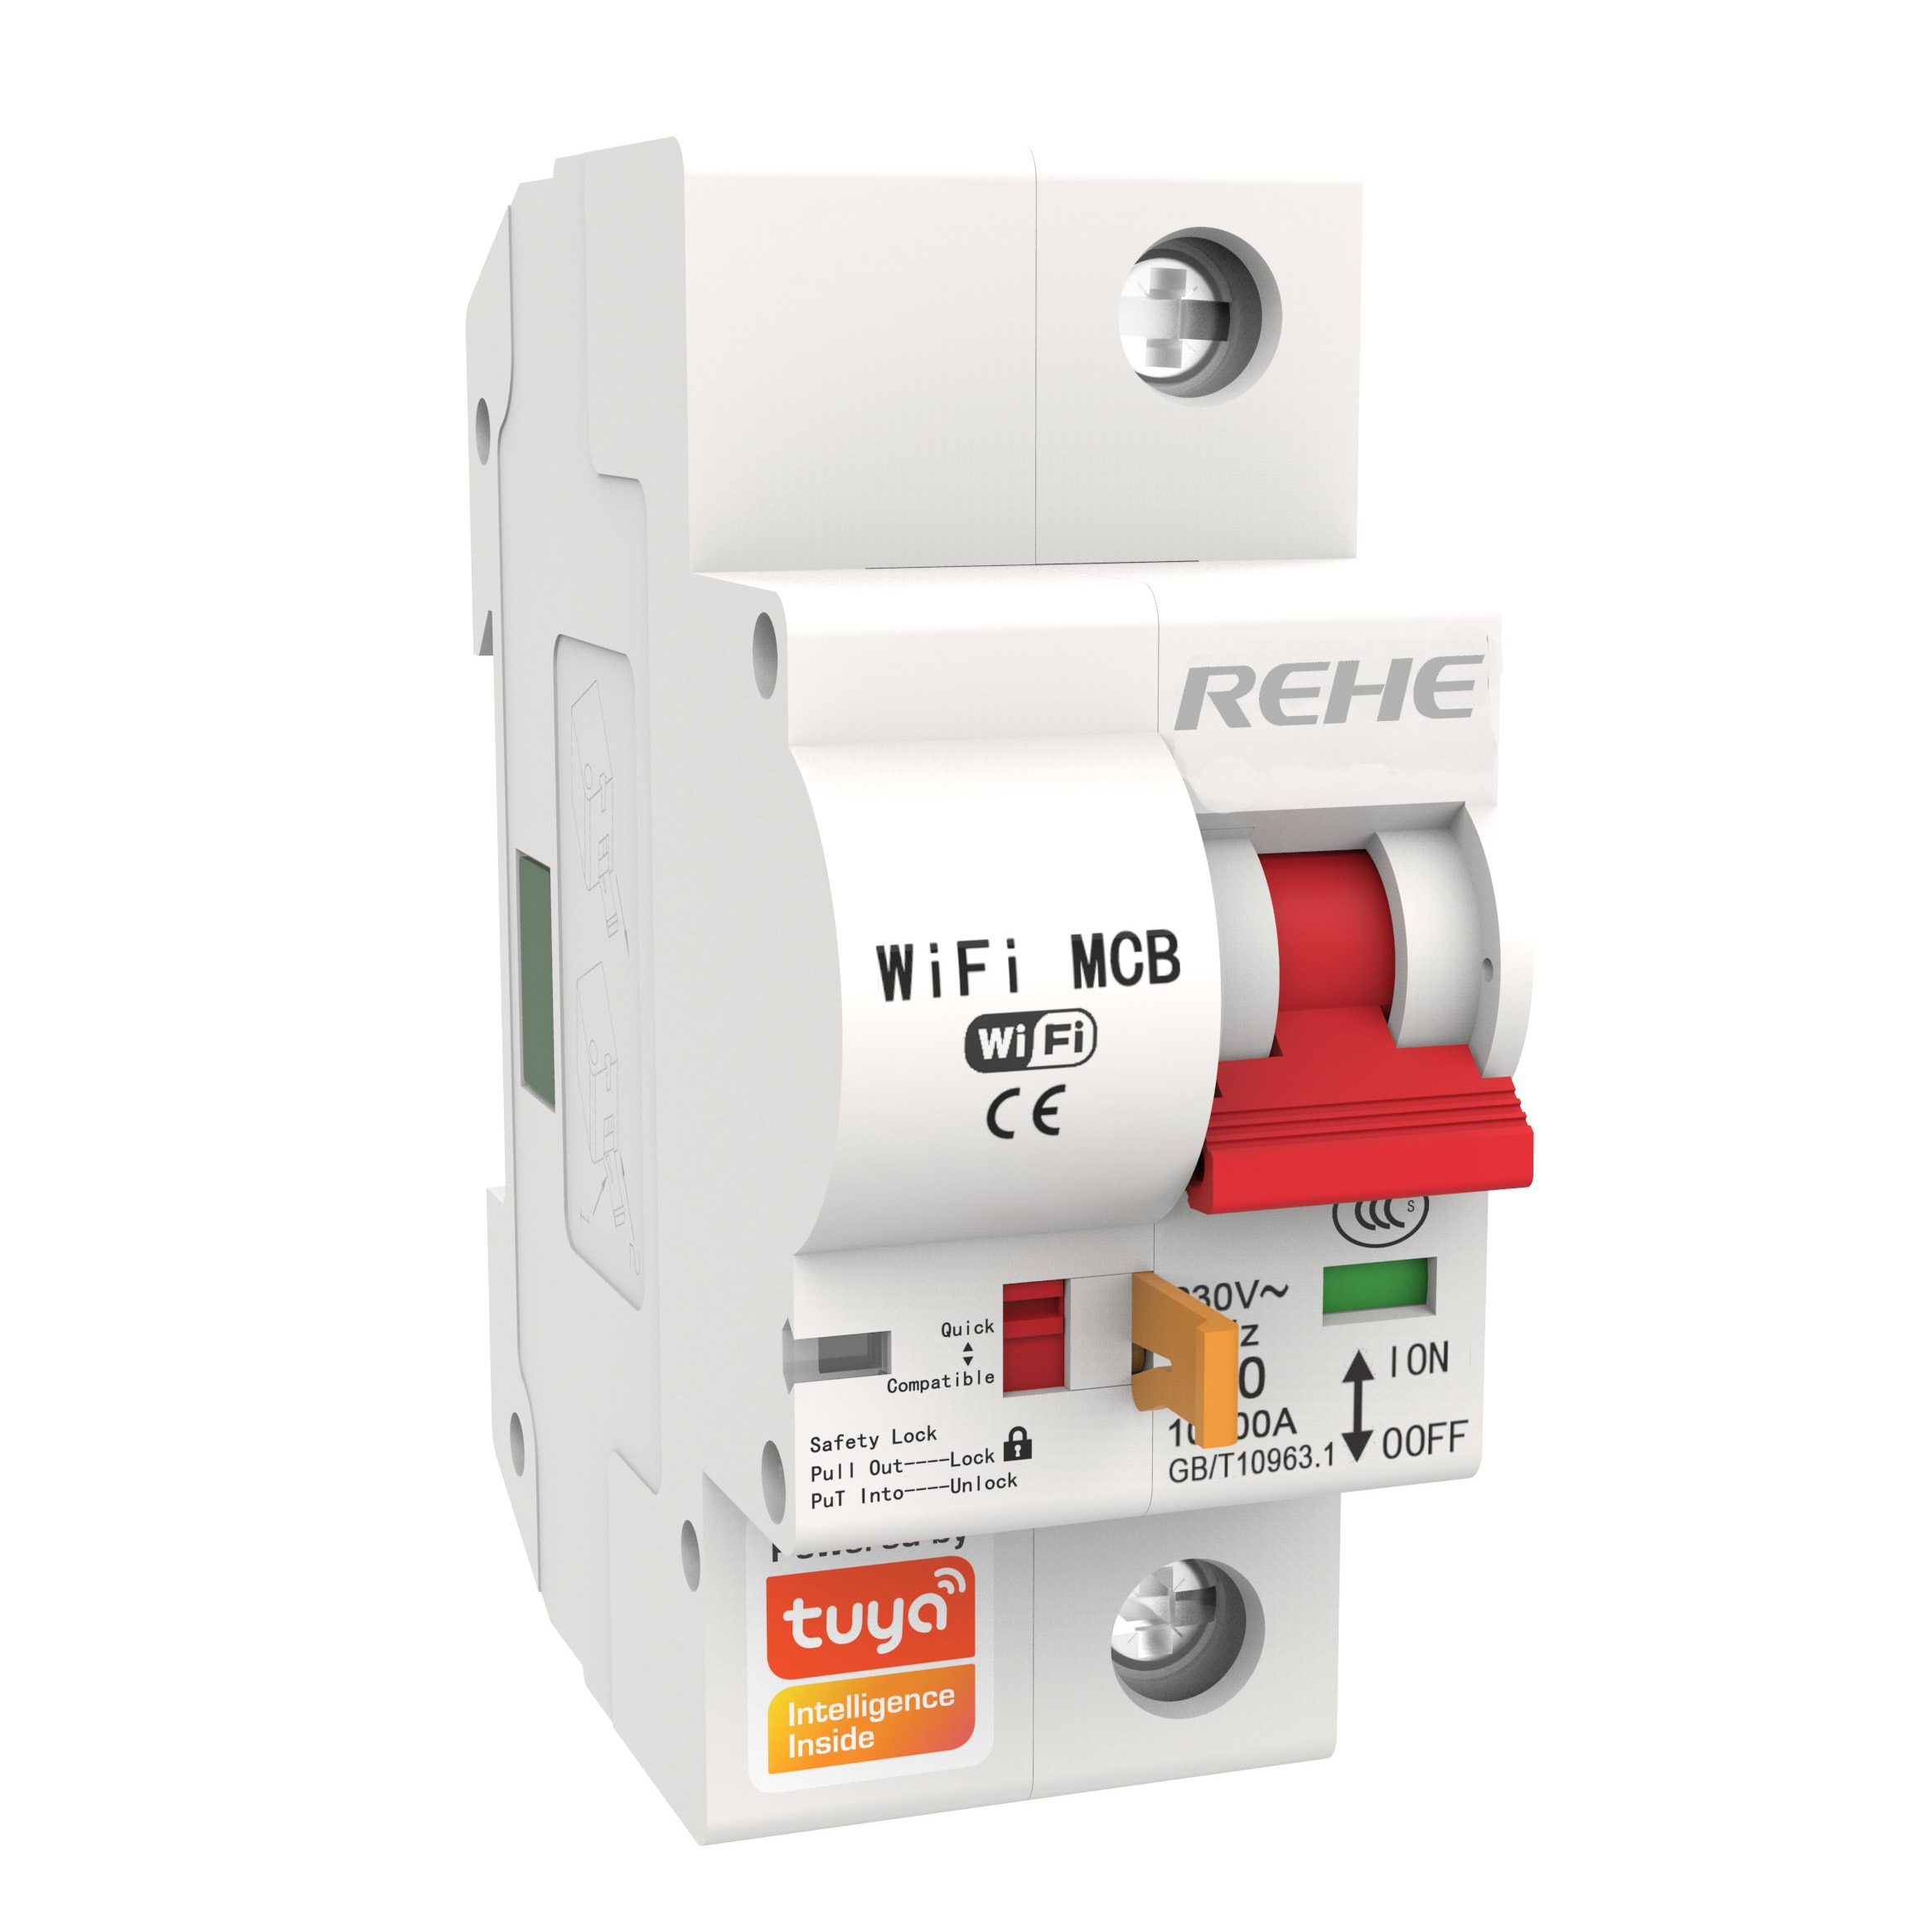 1P 2P 3P 4P Remote Control WiFi Circuit Breaker 10A-125A Powered By REHE Third-party Service Alexa Google Assistant IFTTT